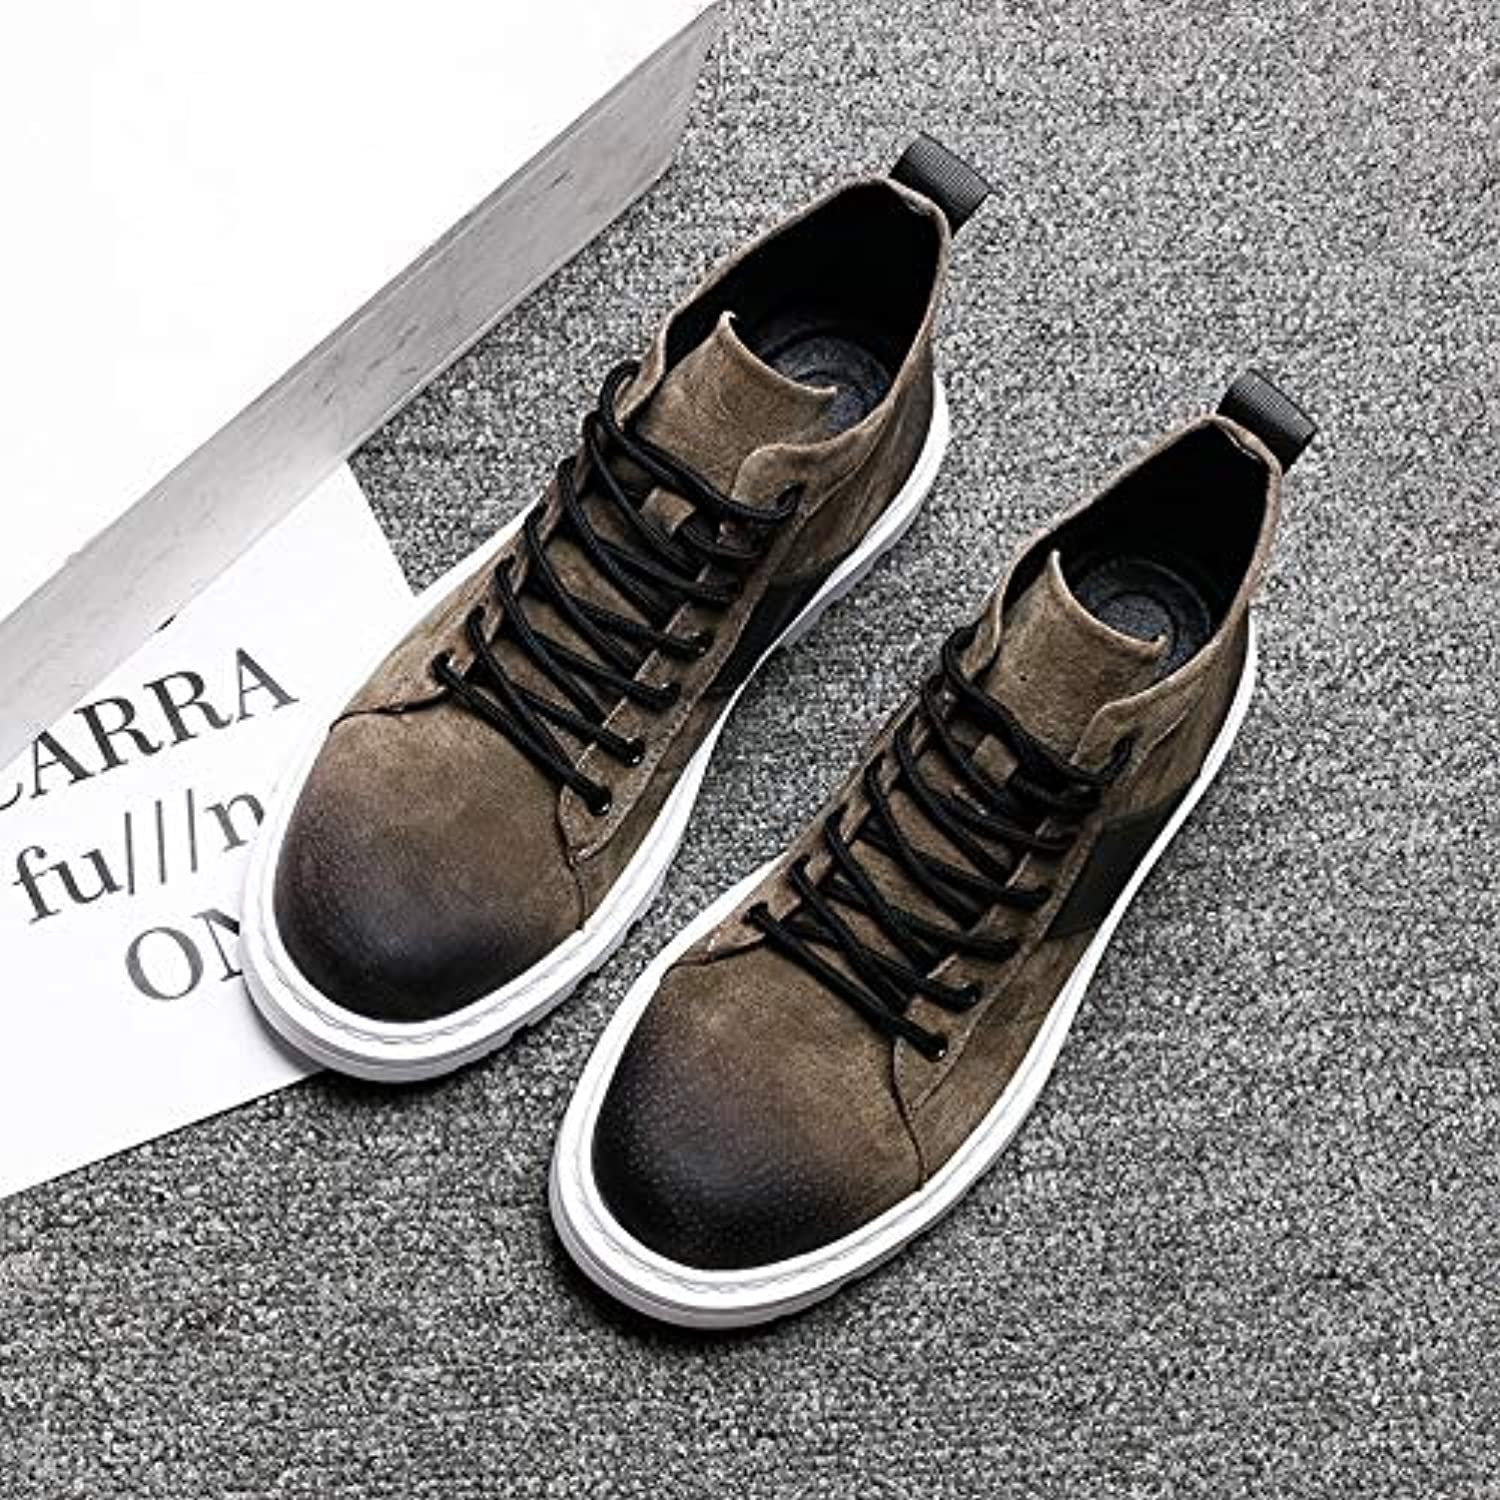 LOVDRAM Boots Men's Autumn And Winter New Wild Boots Martin Boots Casual shoes In The High Boots Men'S Fashion Platform shoes